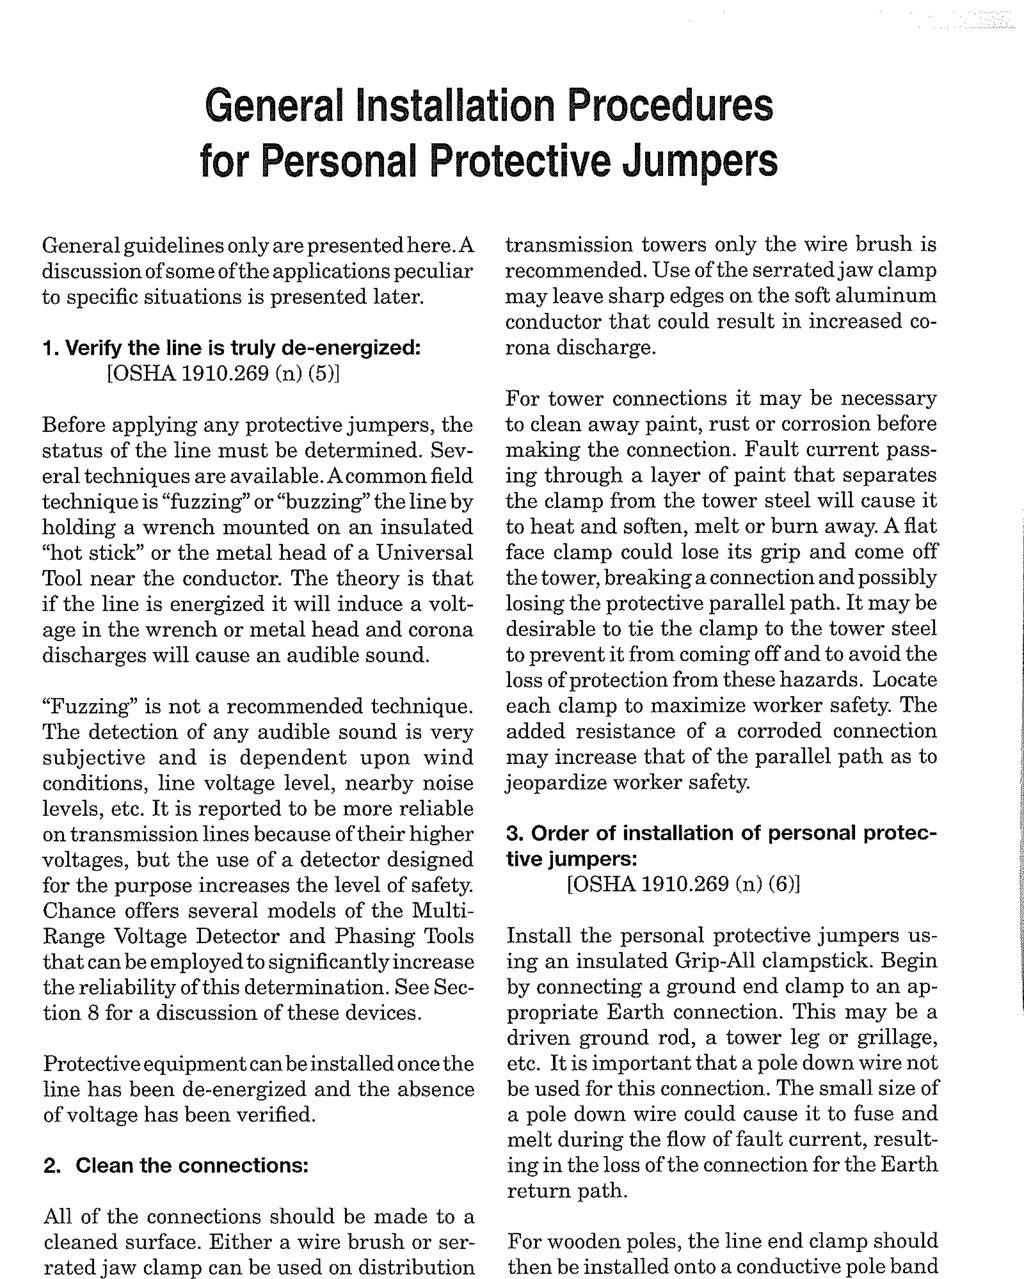 General Installation Procedures for Personal Protective Jumpers General guidelines only are presented here.a discussion of some of the applications peculiar to specific situations is presented later.